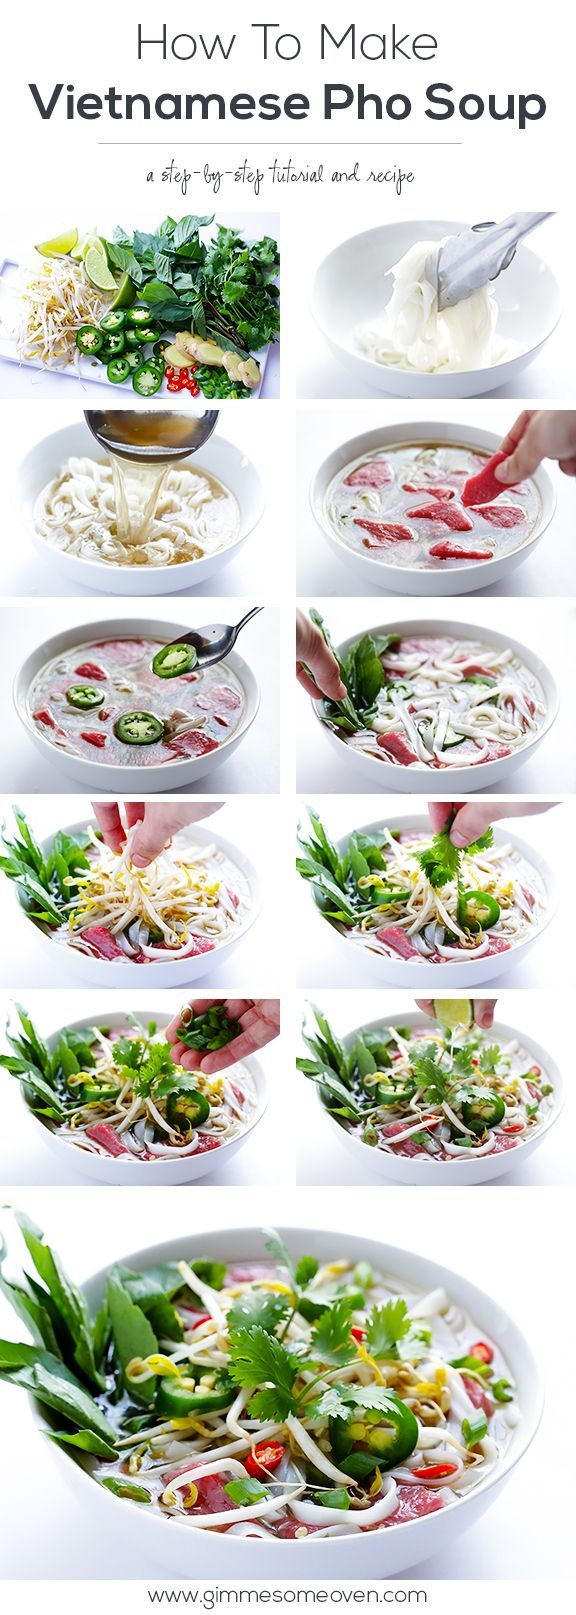 Vietnamese Pho Soup Recipe - so easy to make homemade! | gimmesomeoven.com #soup